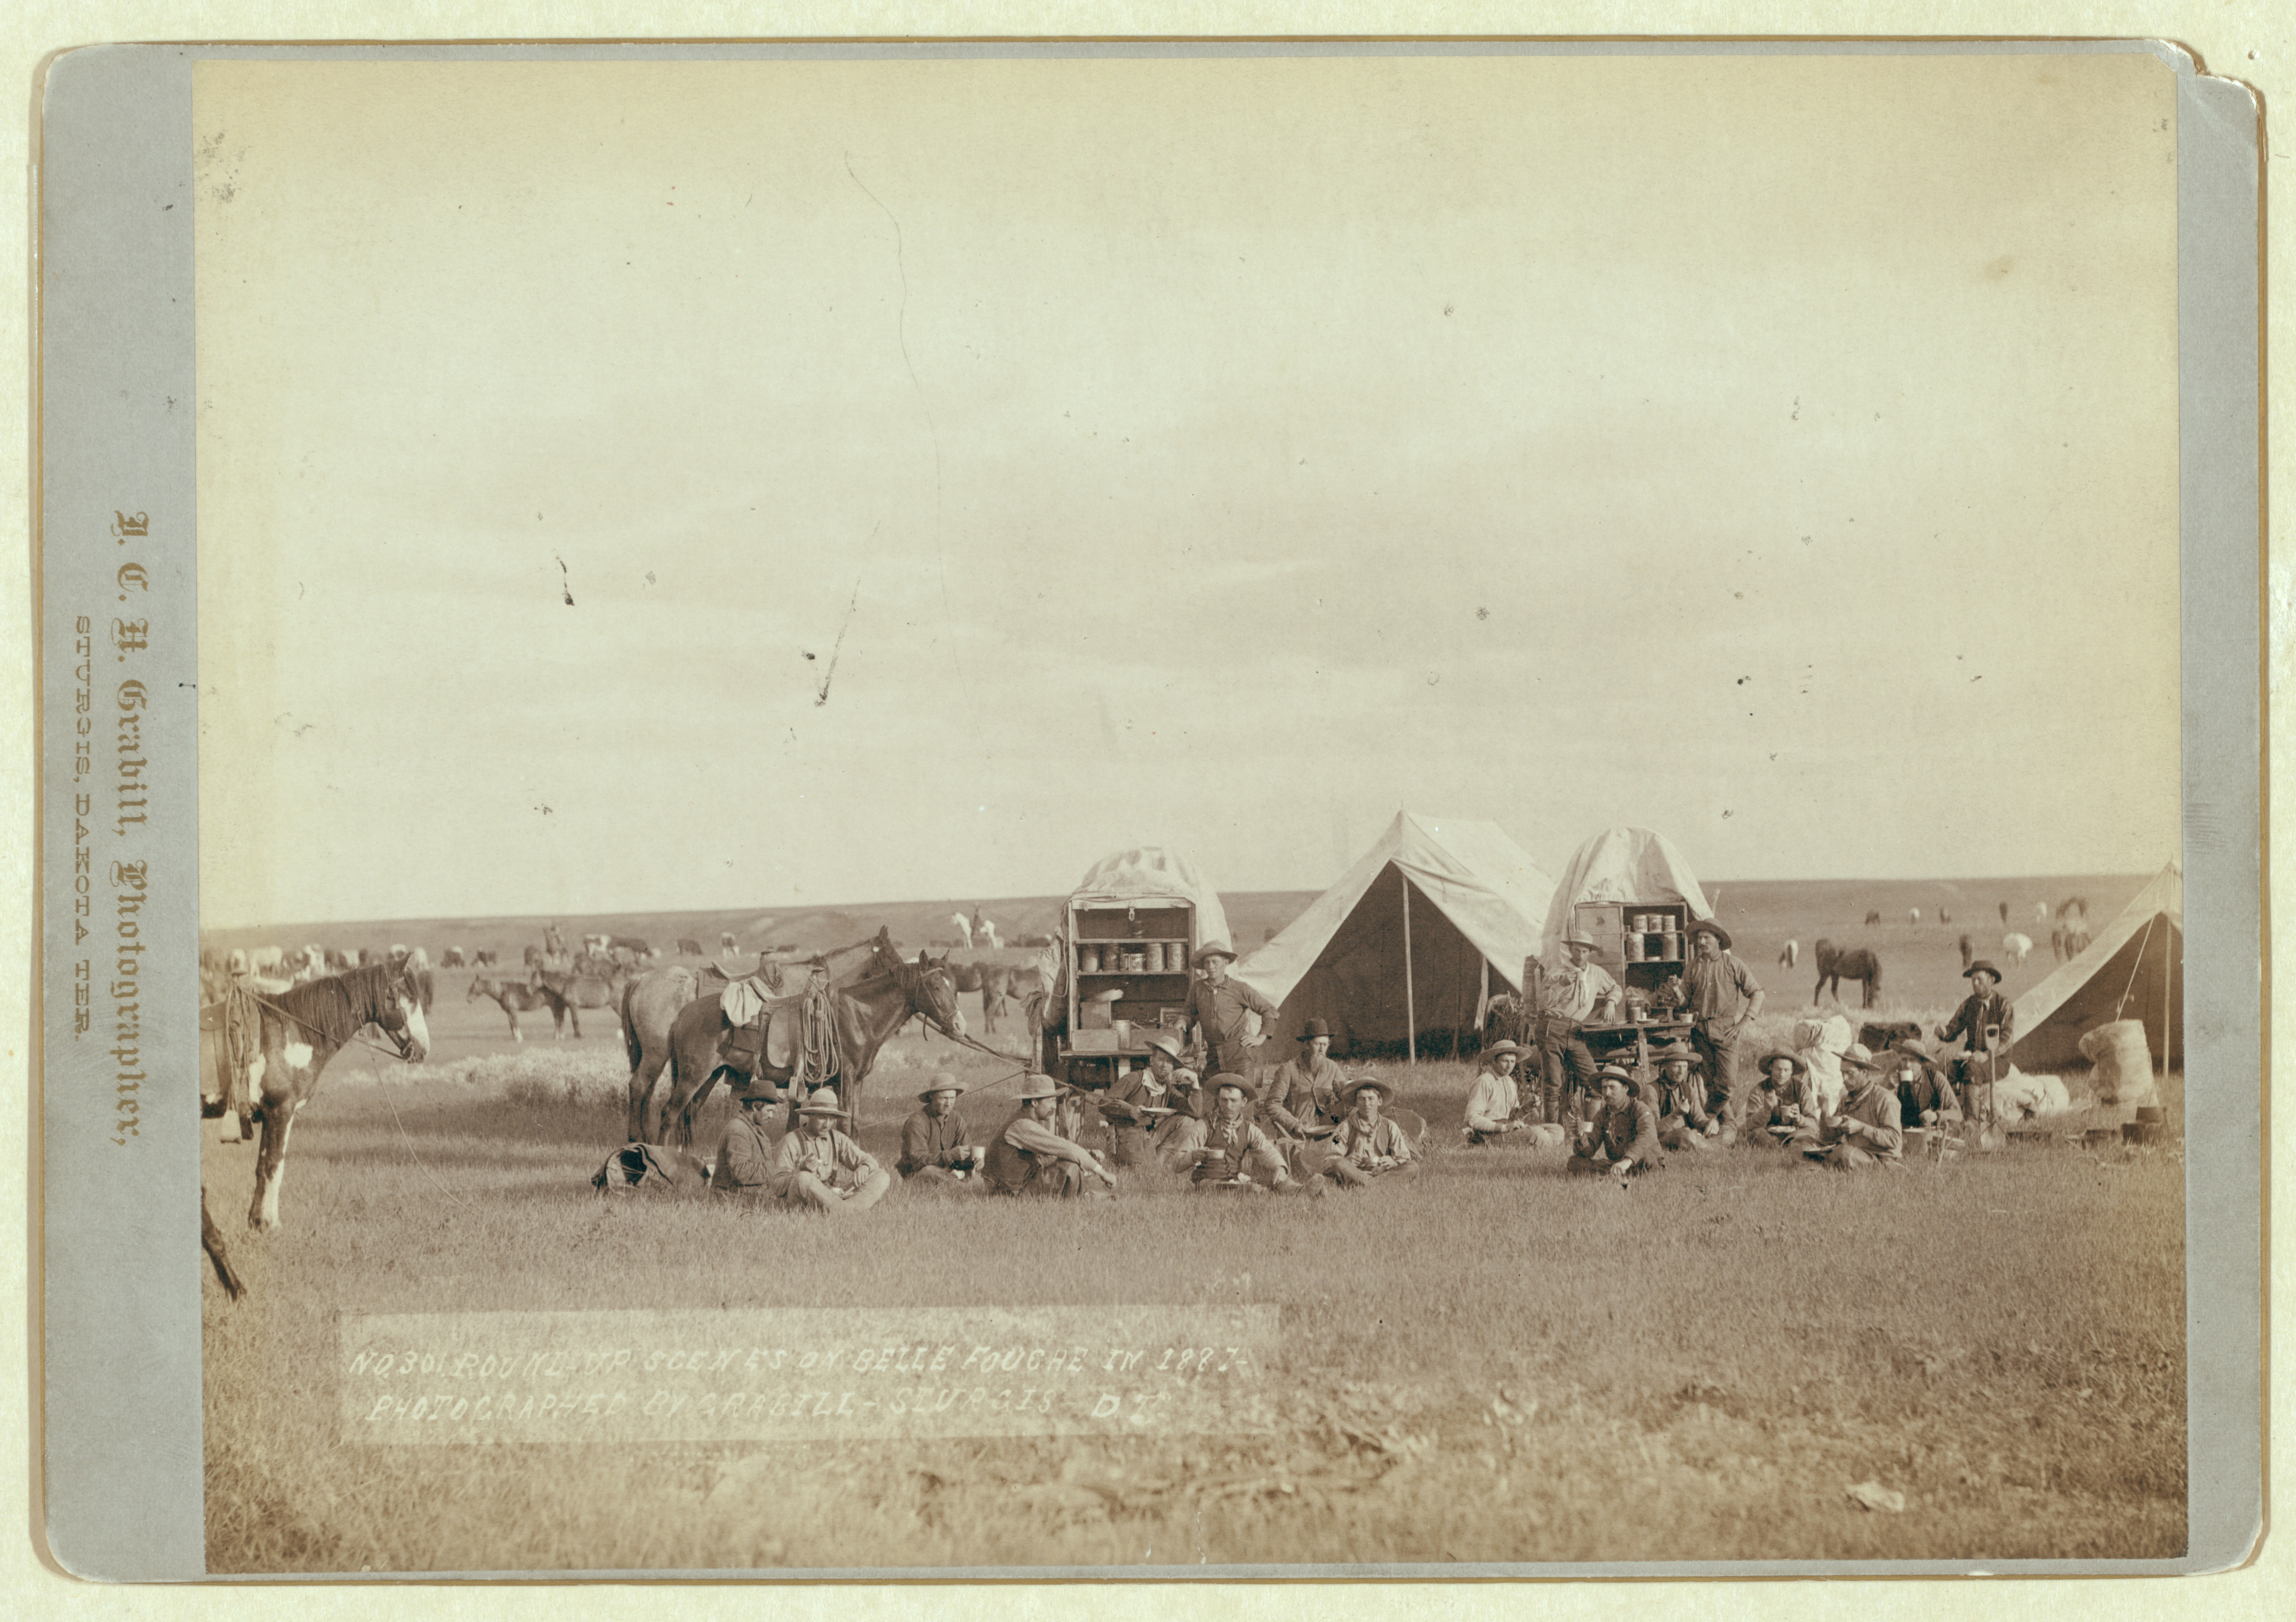 12 Roundup scenes on Belle Fouche [sic] in 1887